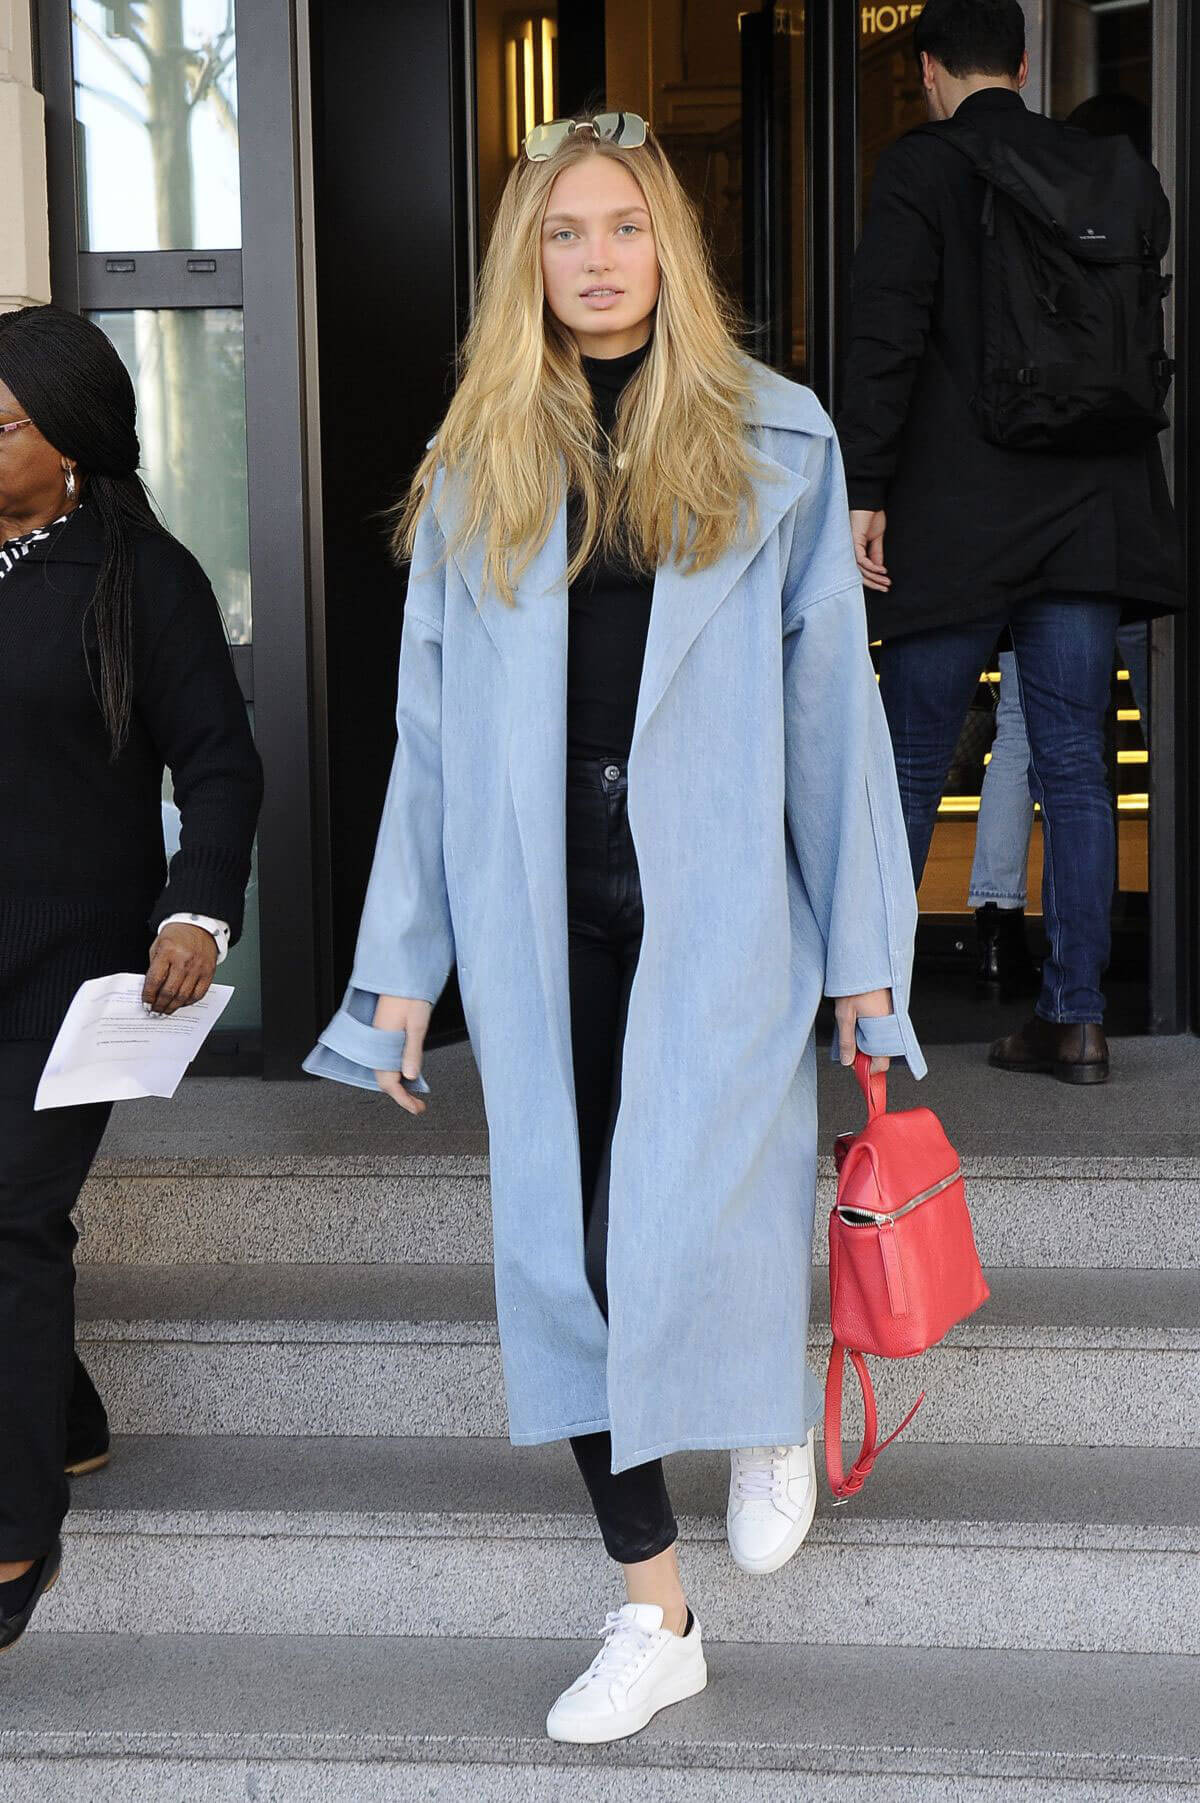 Romee Strijd Stills Out and About in Milan